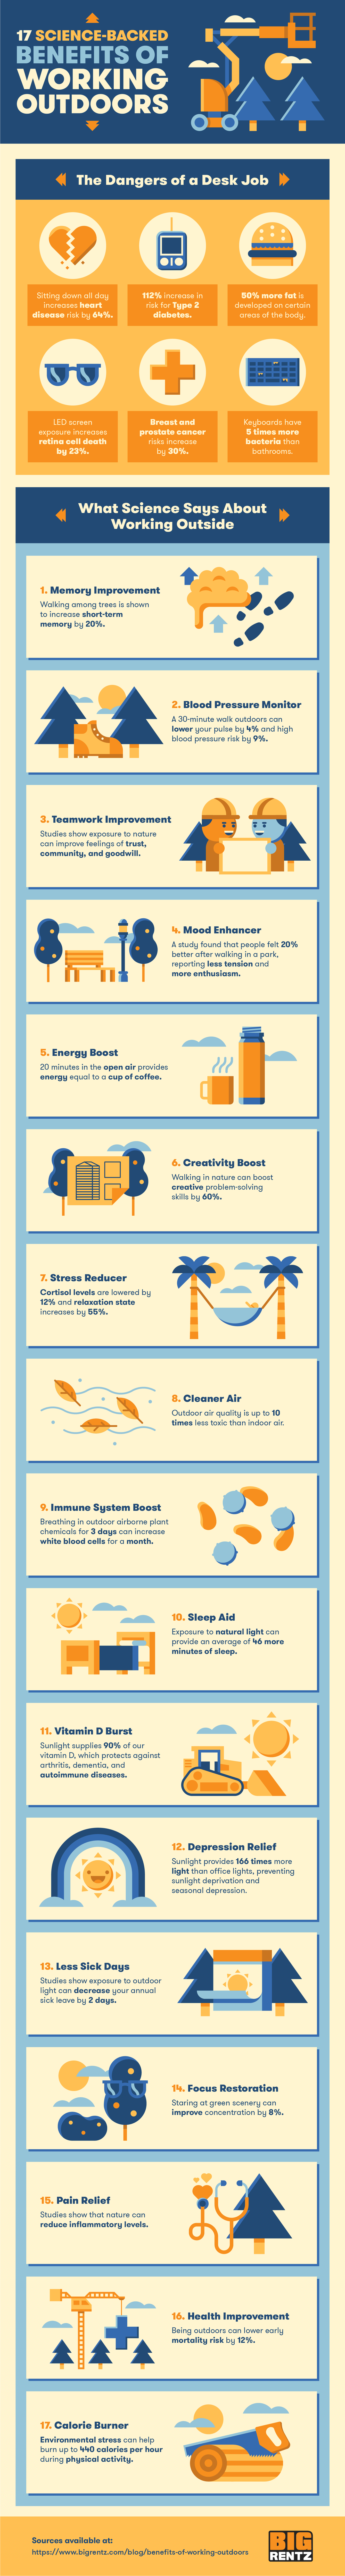 Infographic describing 17 science-backed benefits of working in an outdoor environment.